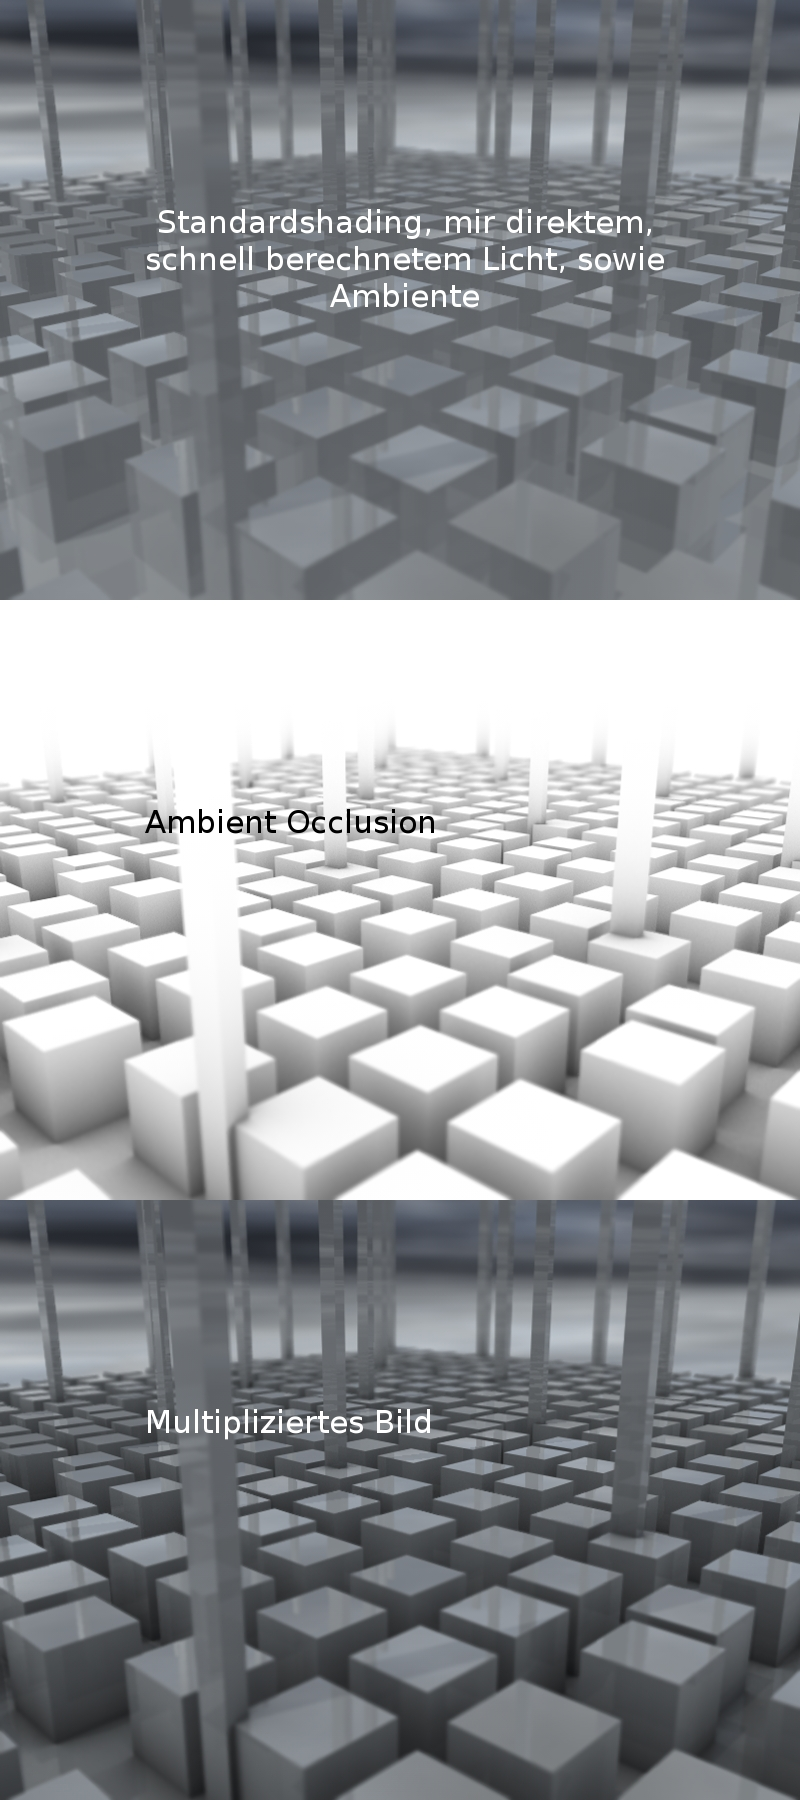 Ambient occlusion - Wikipedia